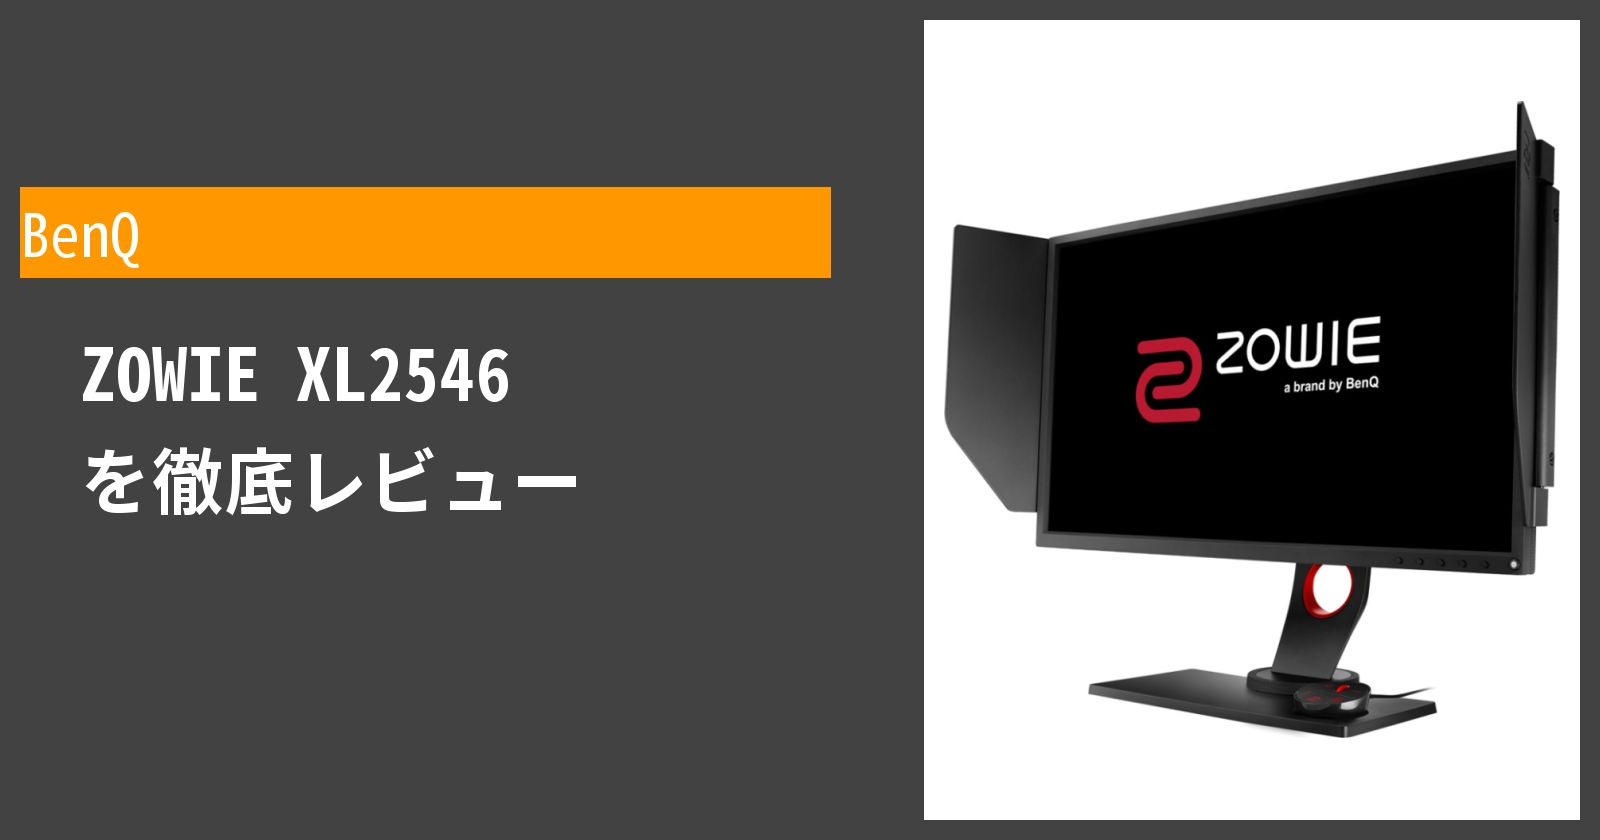 ZOWIE XL2546を徹底評価